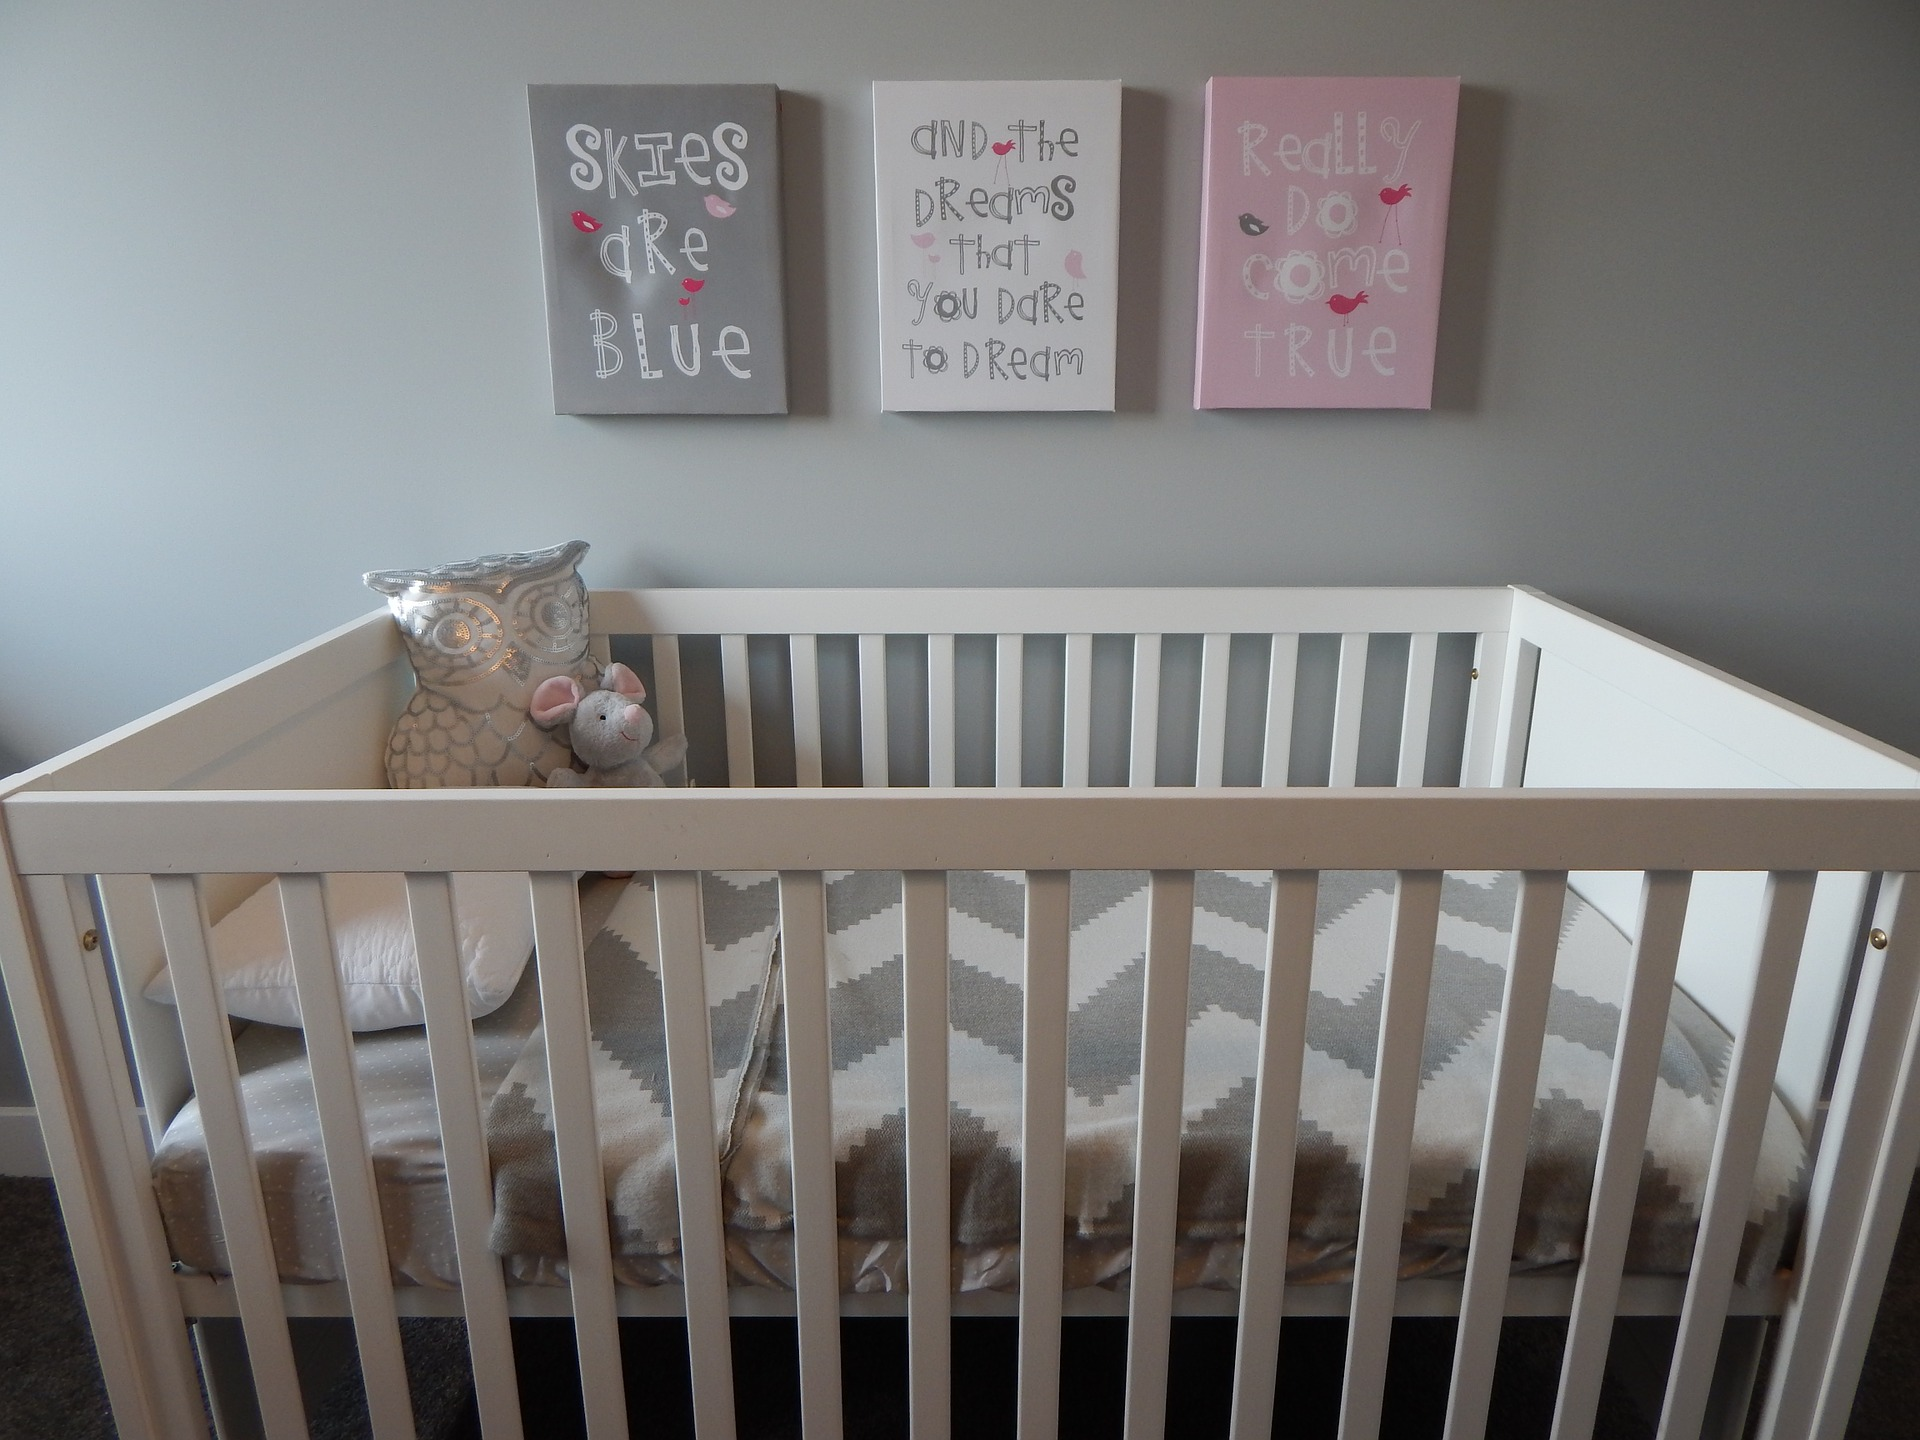 A new study says that over a quarter of current ads by crib manufacturers depict infant sleep conditions that put them at higher risk of SIDS.